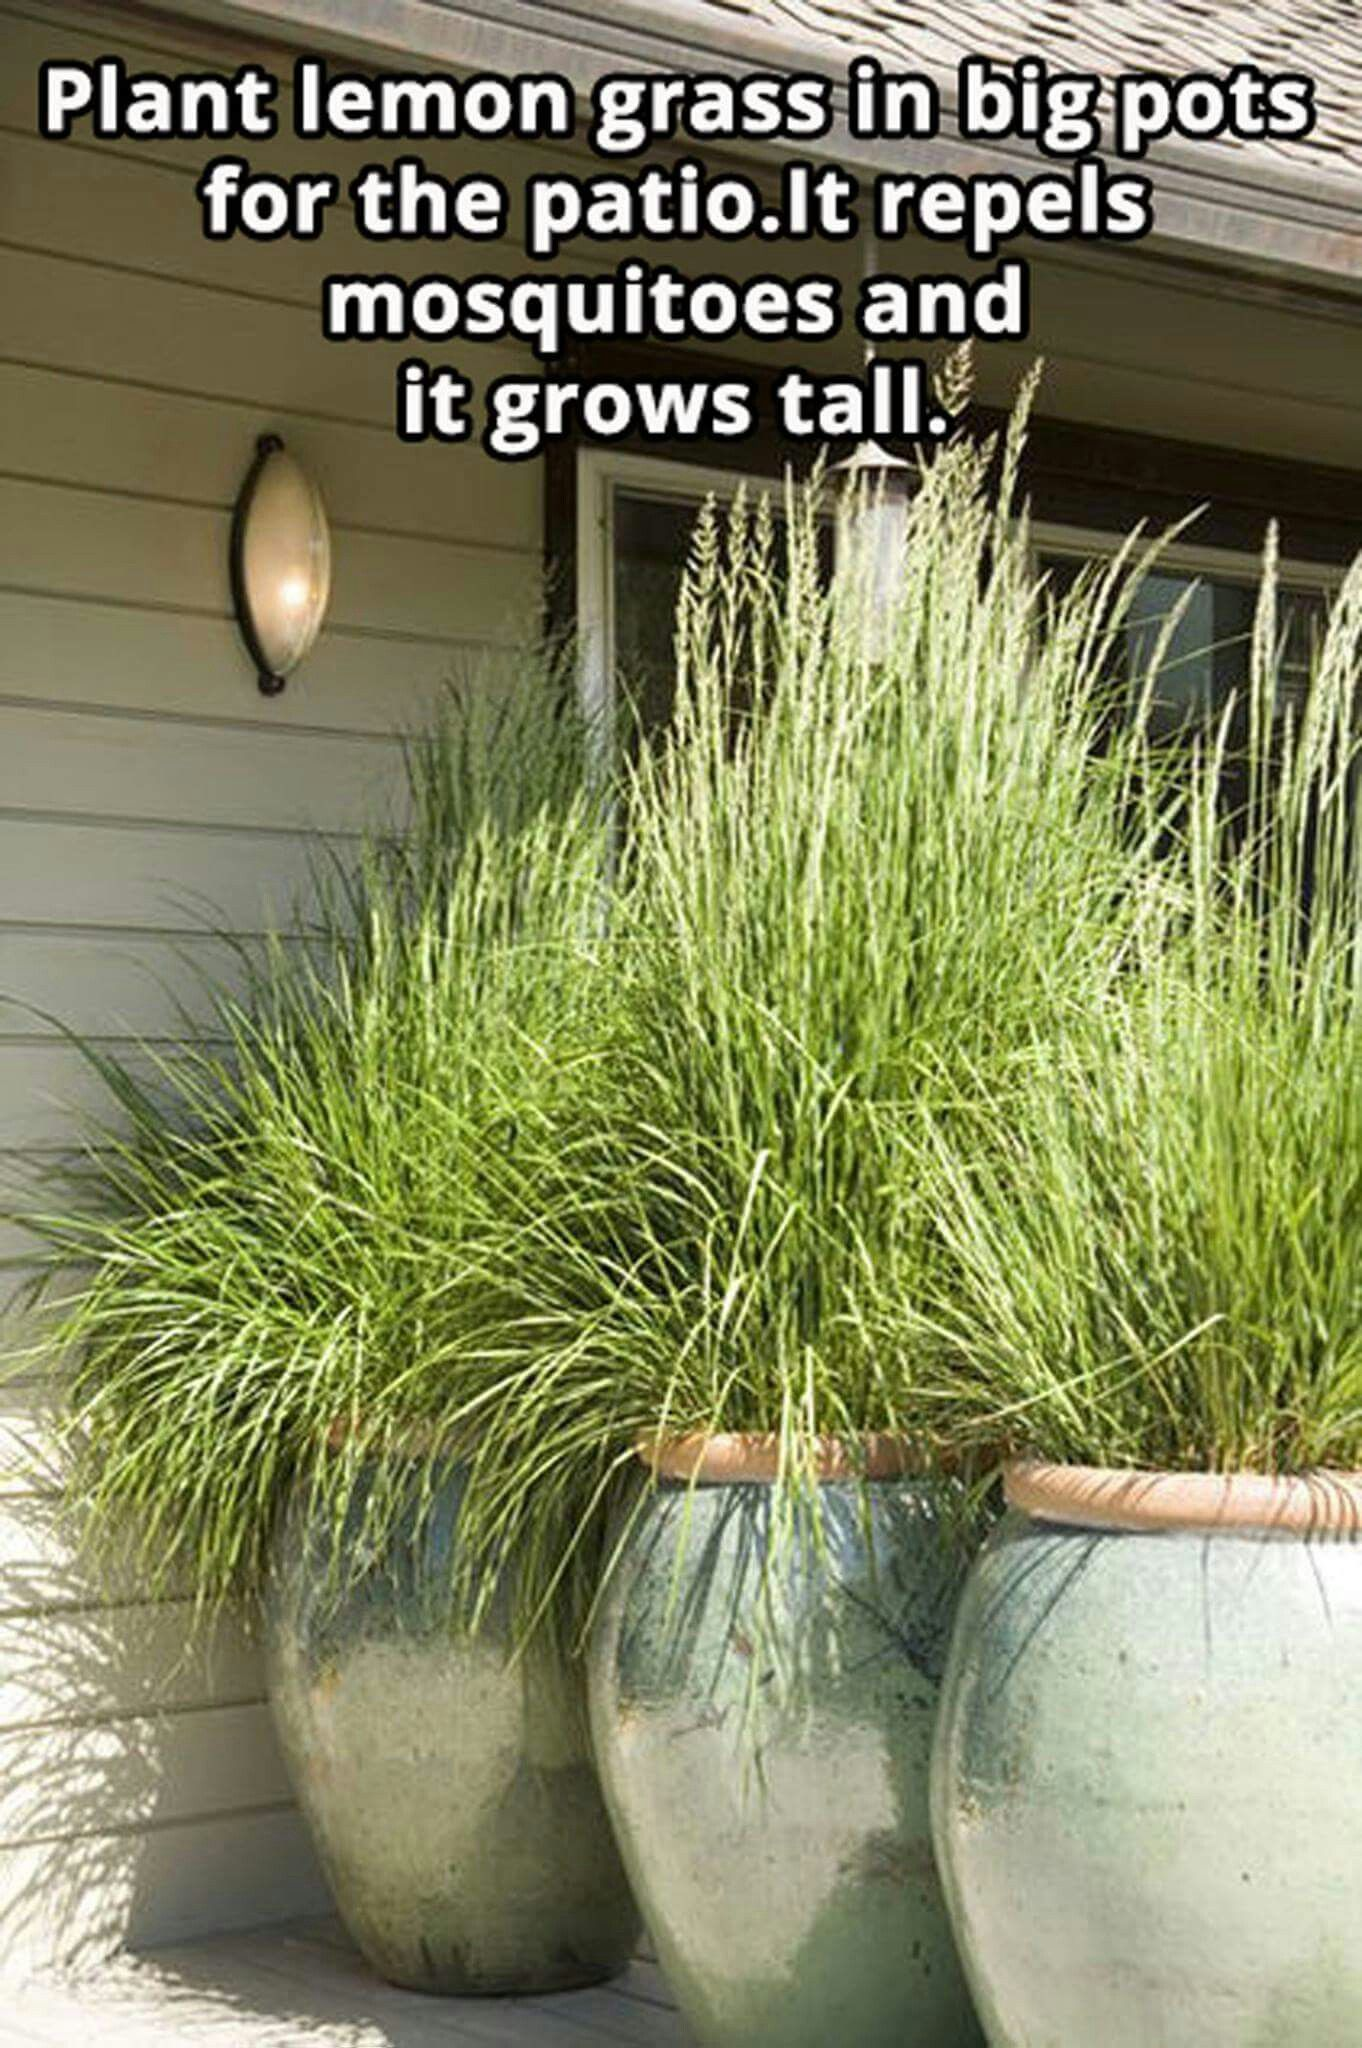 Plant Lemon Grass In Big Pots For The Patiou2026 It Repels Mosquitoes And It  Grows Tall. On Deck By Hot Tub @ Home DIY Remodeling By Asmodel